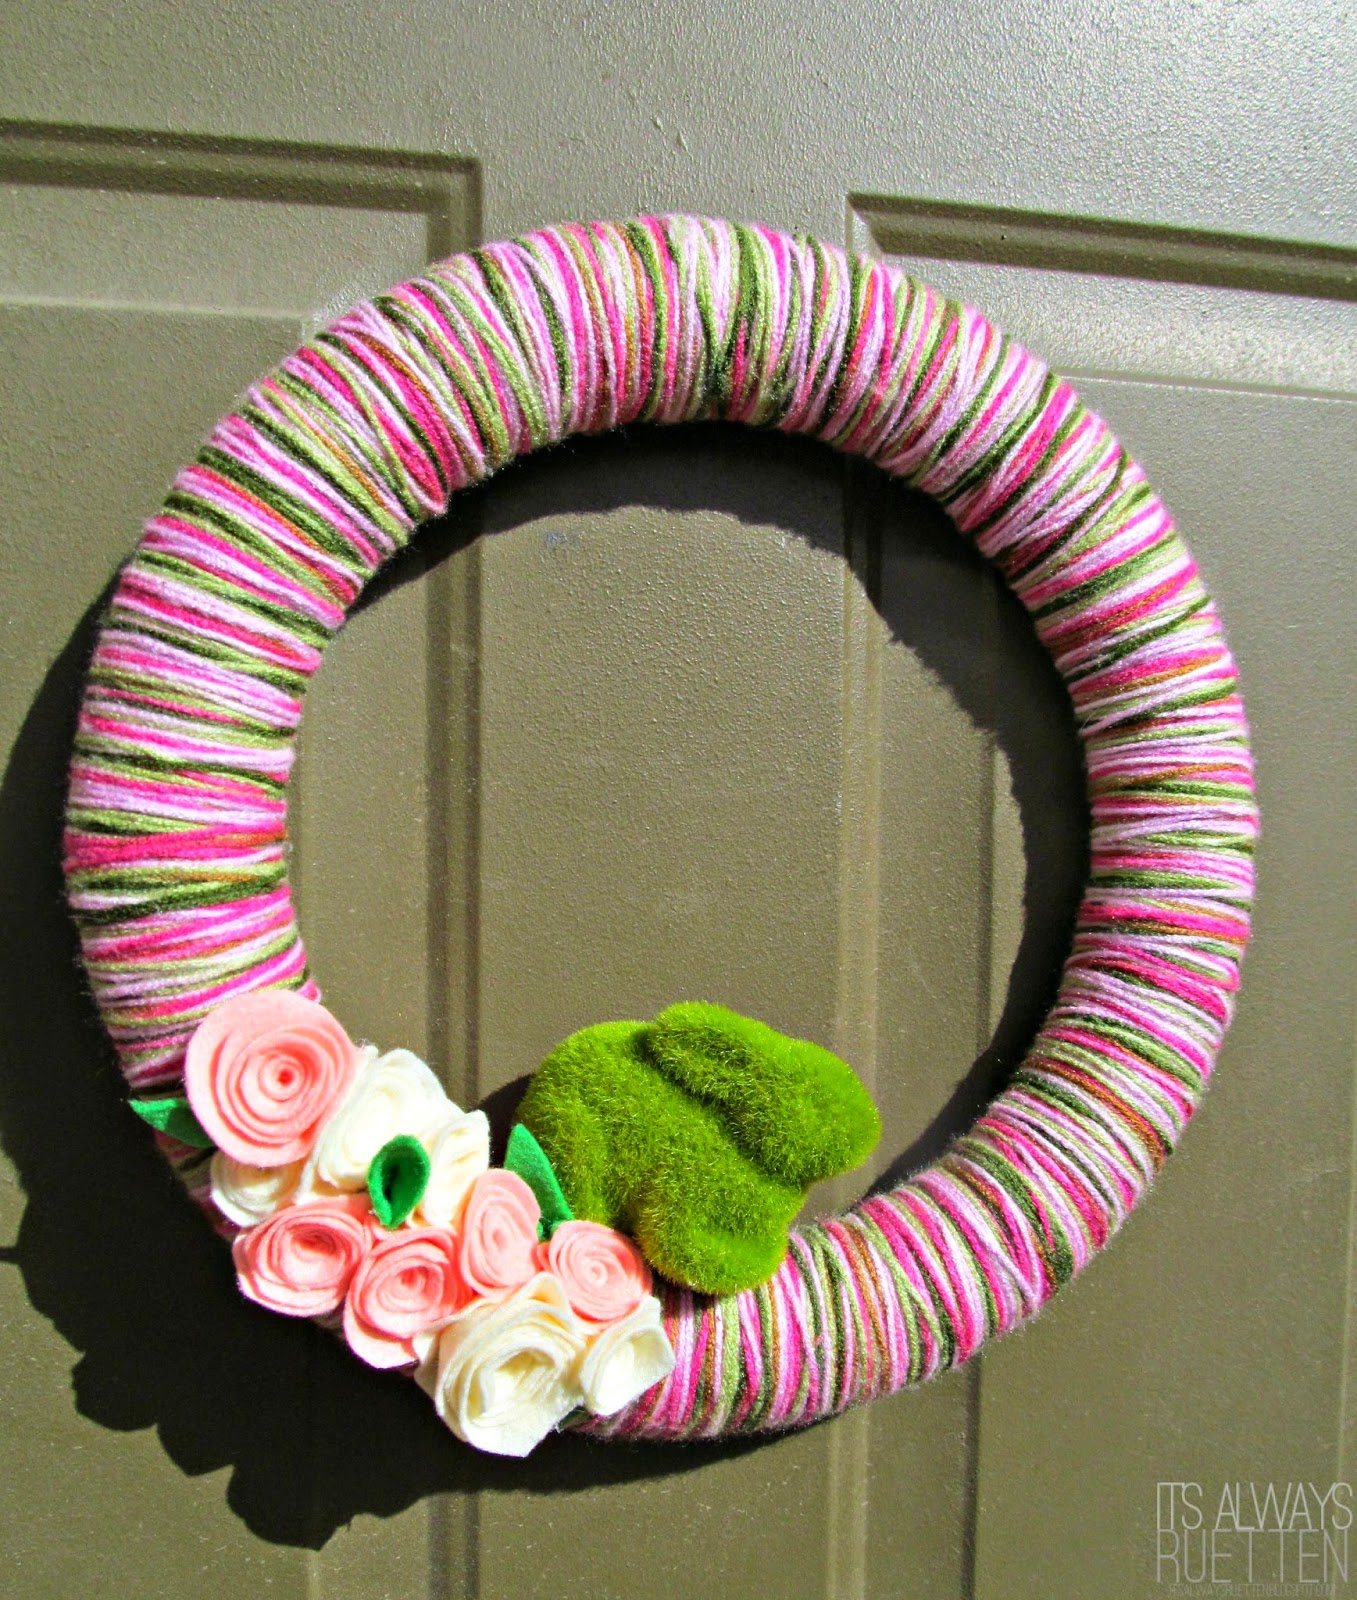 DIY Yarn Wreath for Easter or Spring with felt rosettes and a mossy bunny